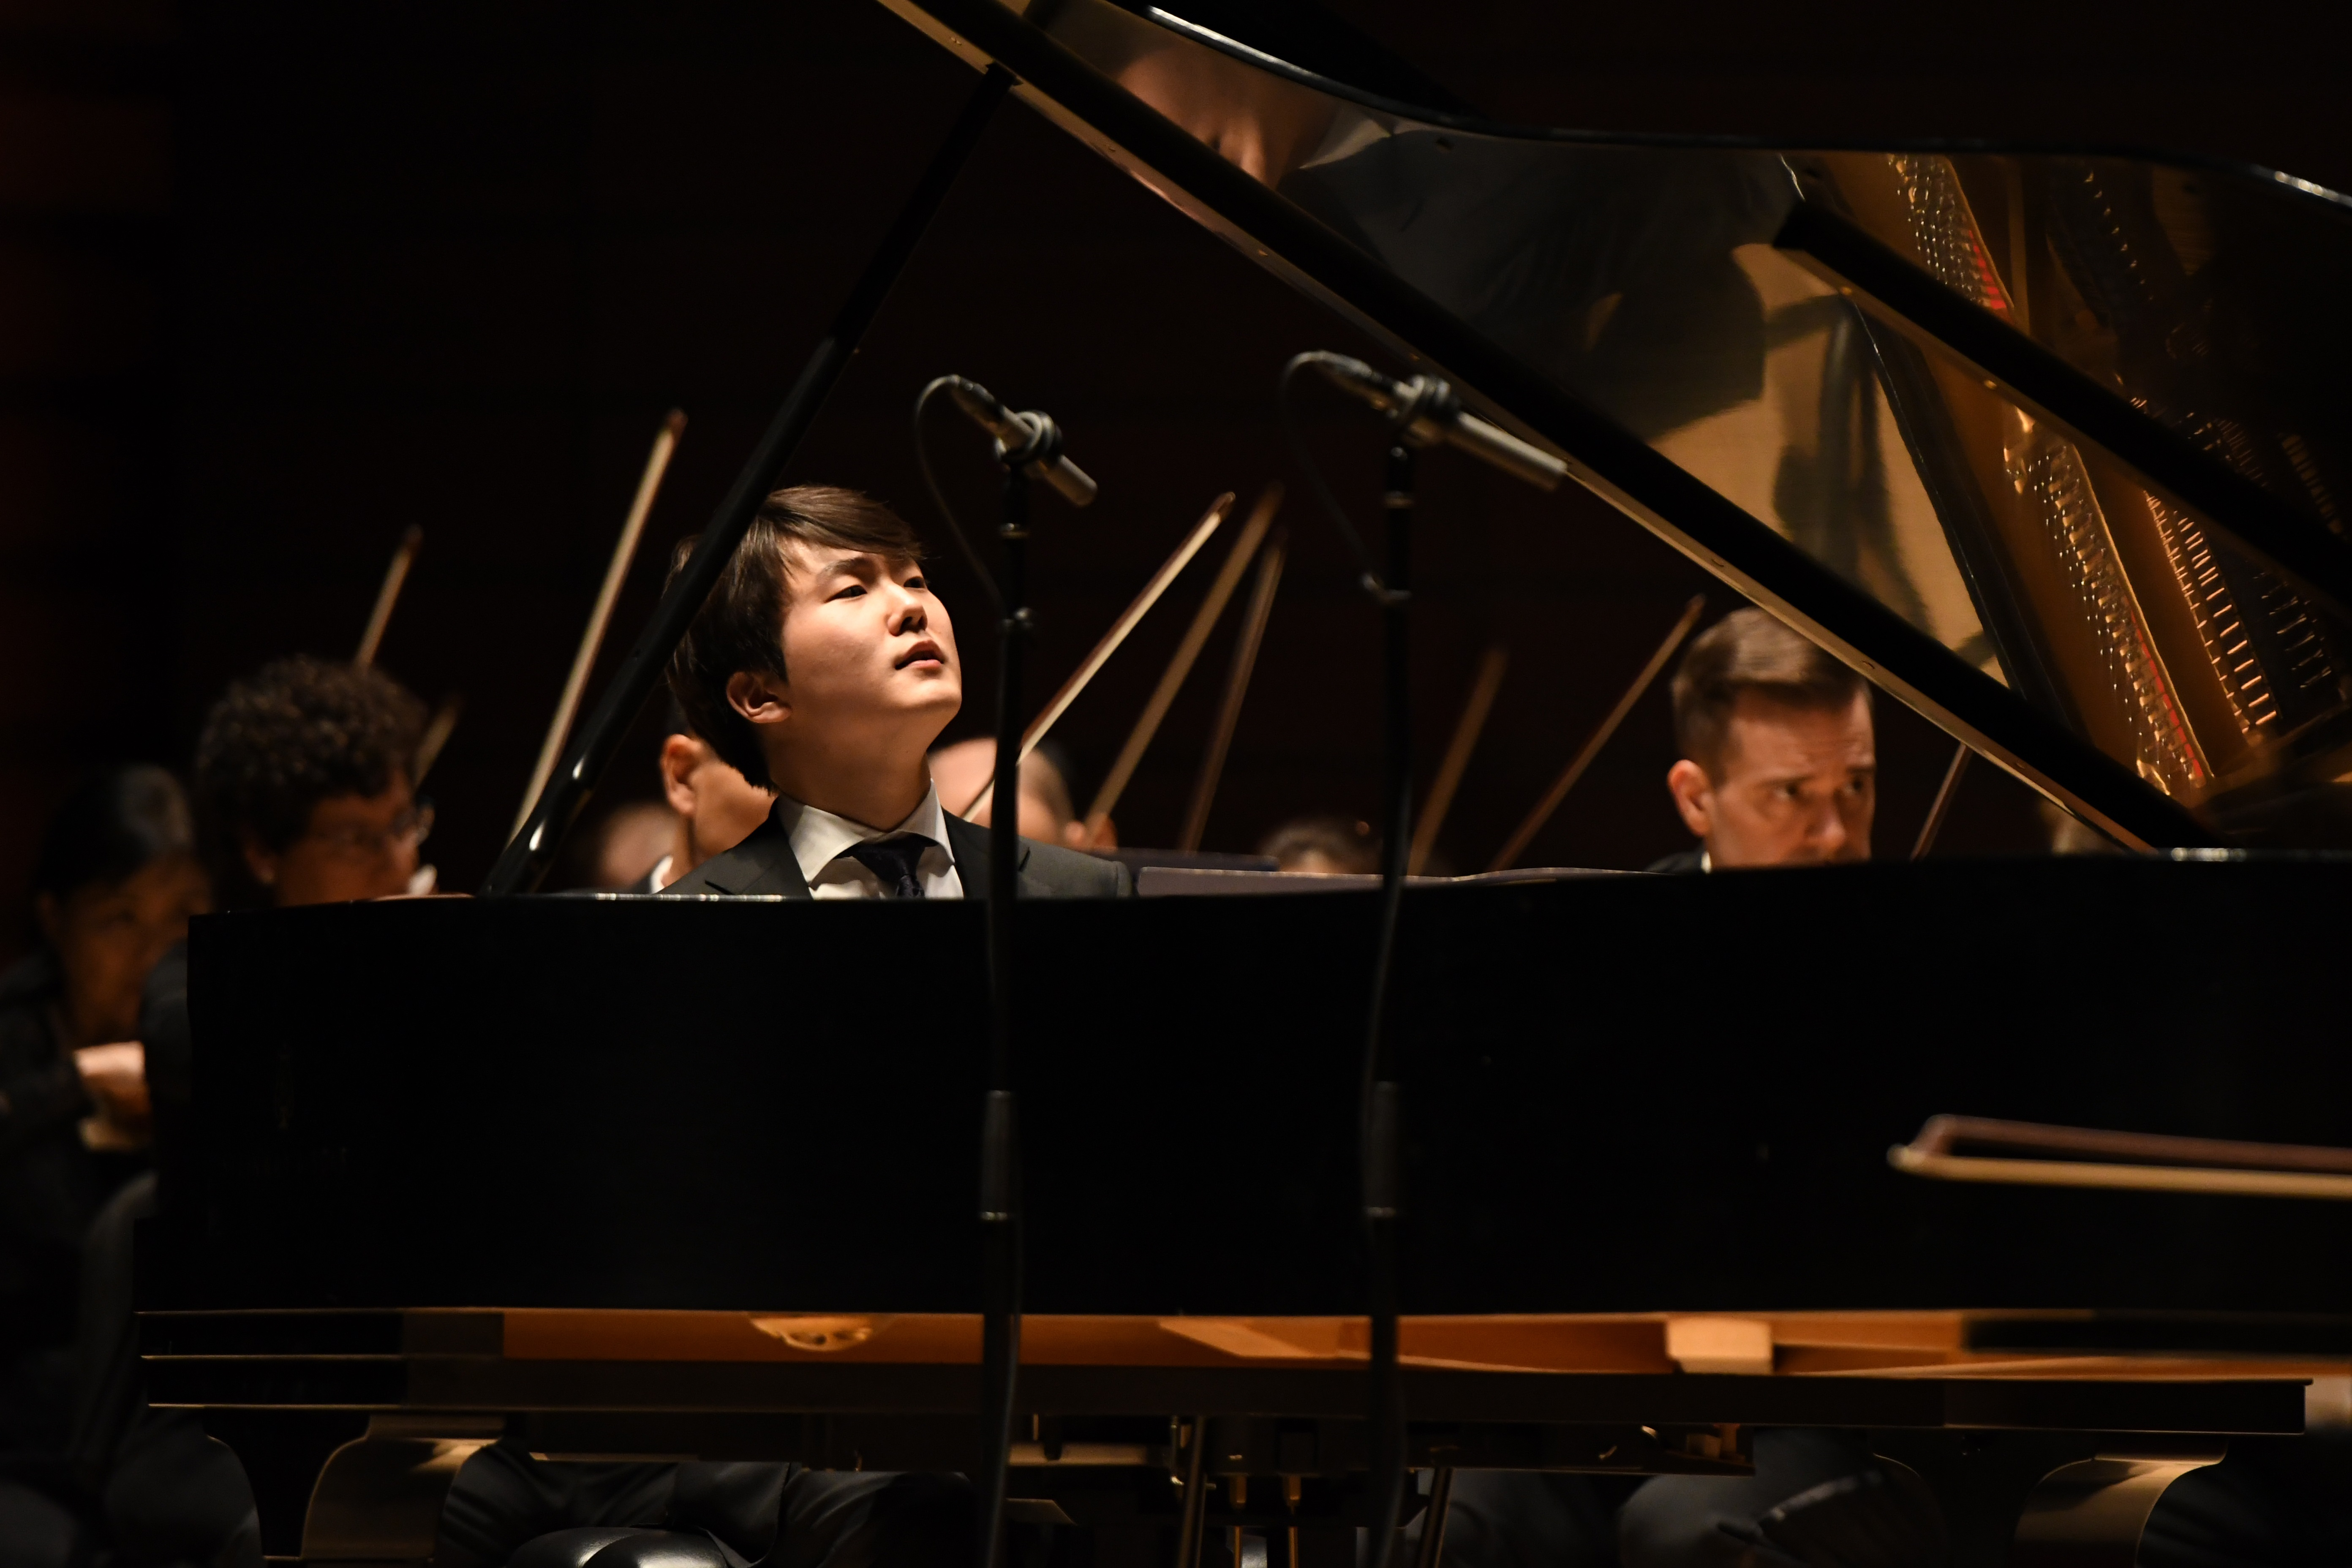 Pianist Seong-Jin Cho Thursday night at Verizon Hall in the Mozart D Minor piano concerto with the Philadelphia Orchestra.